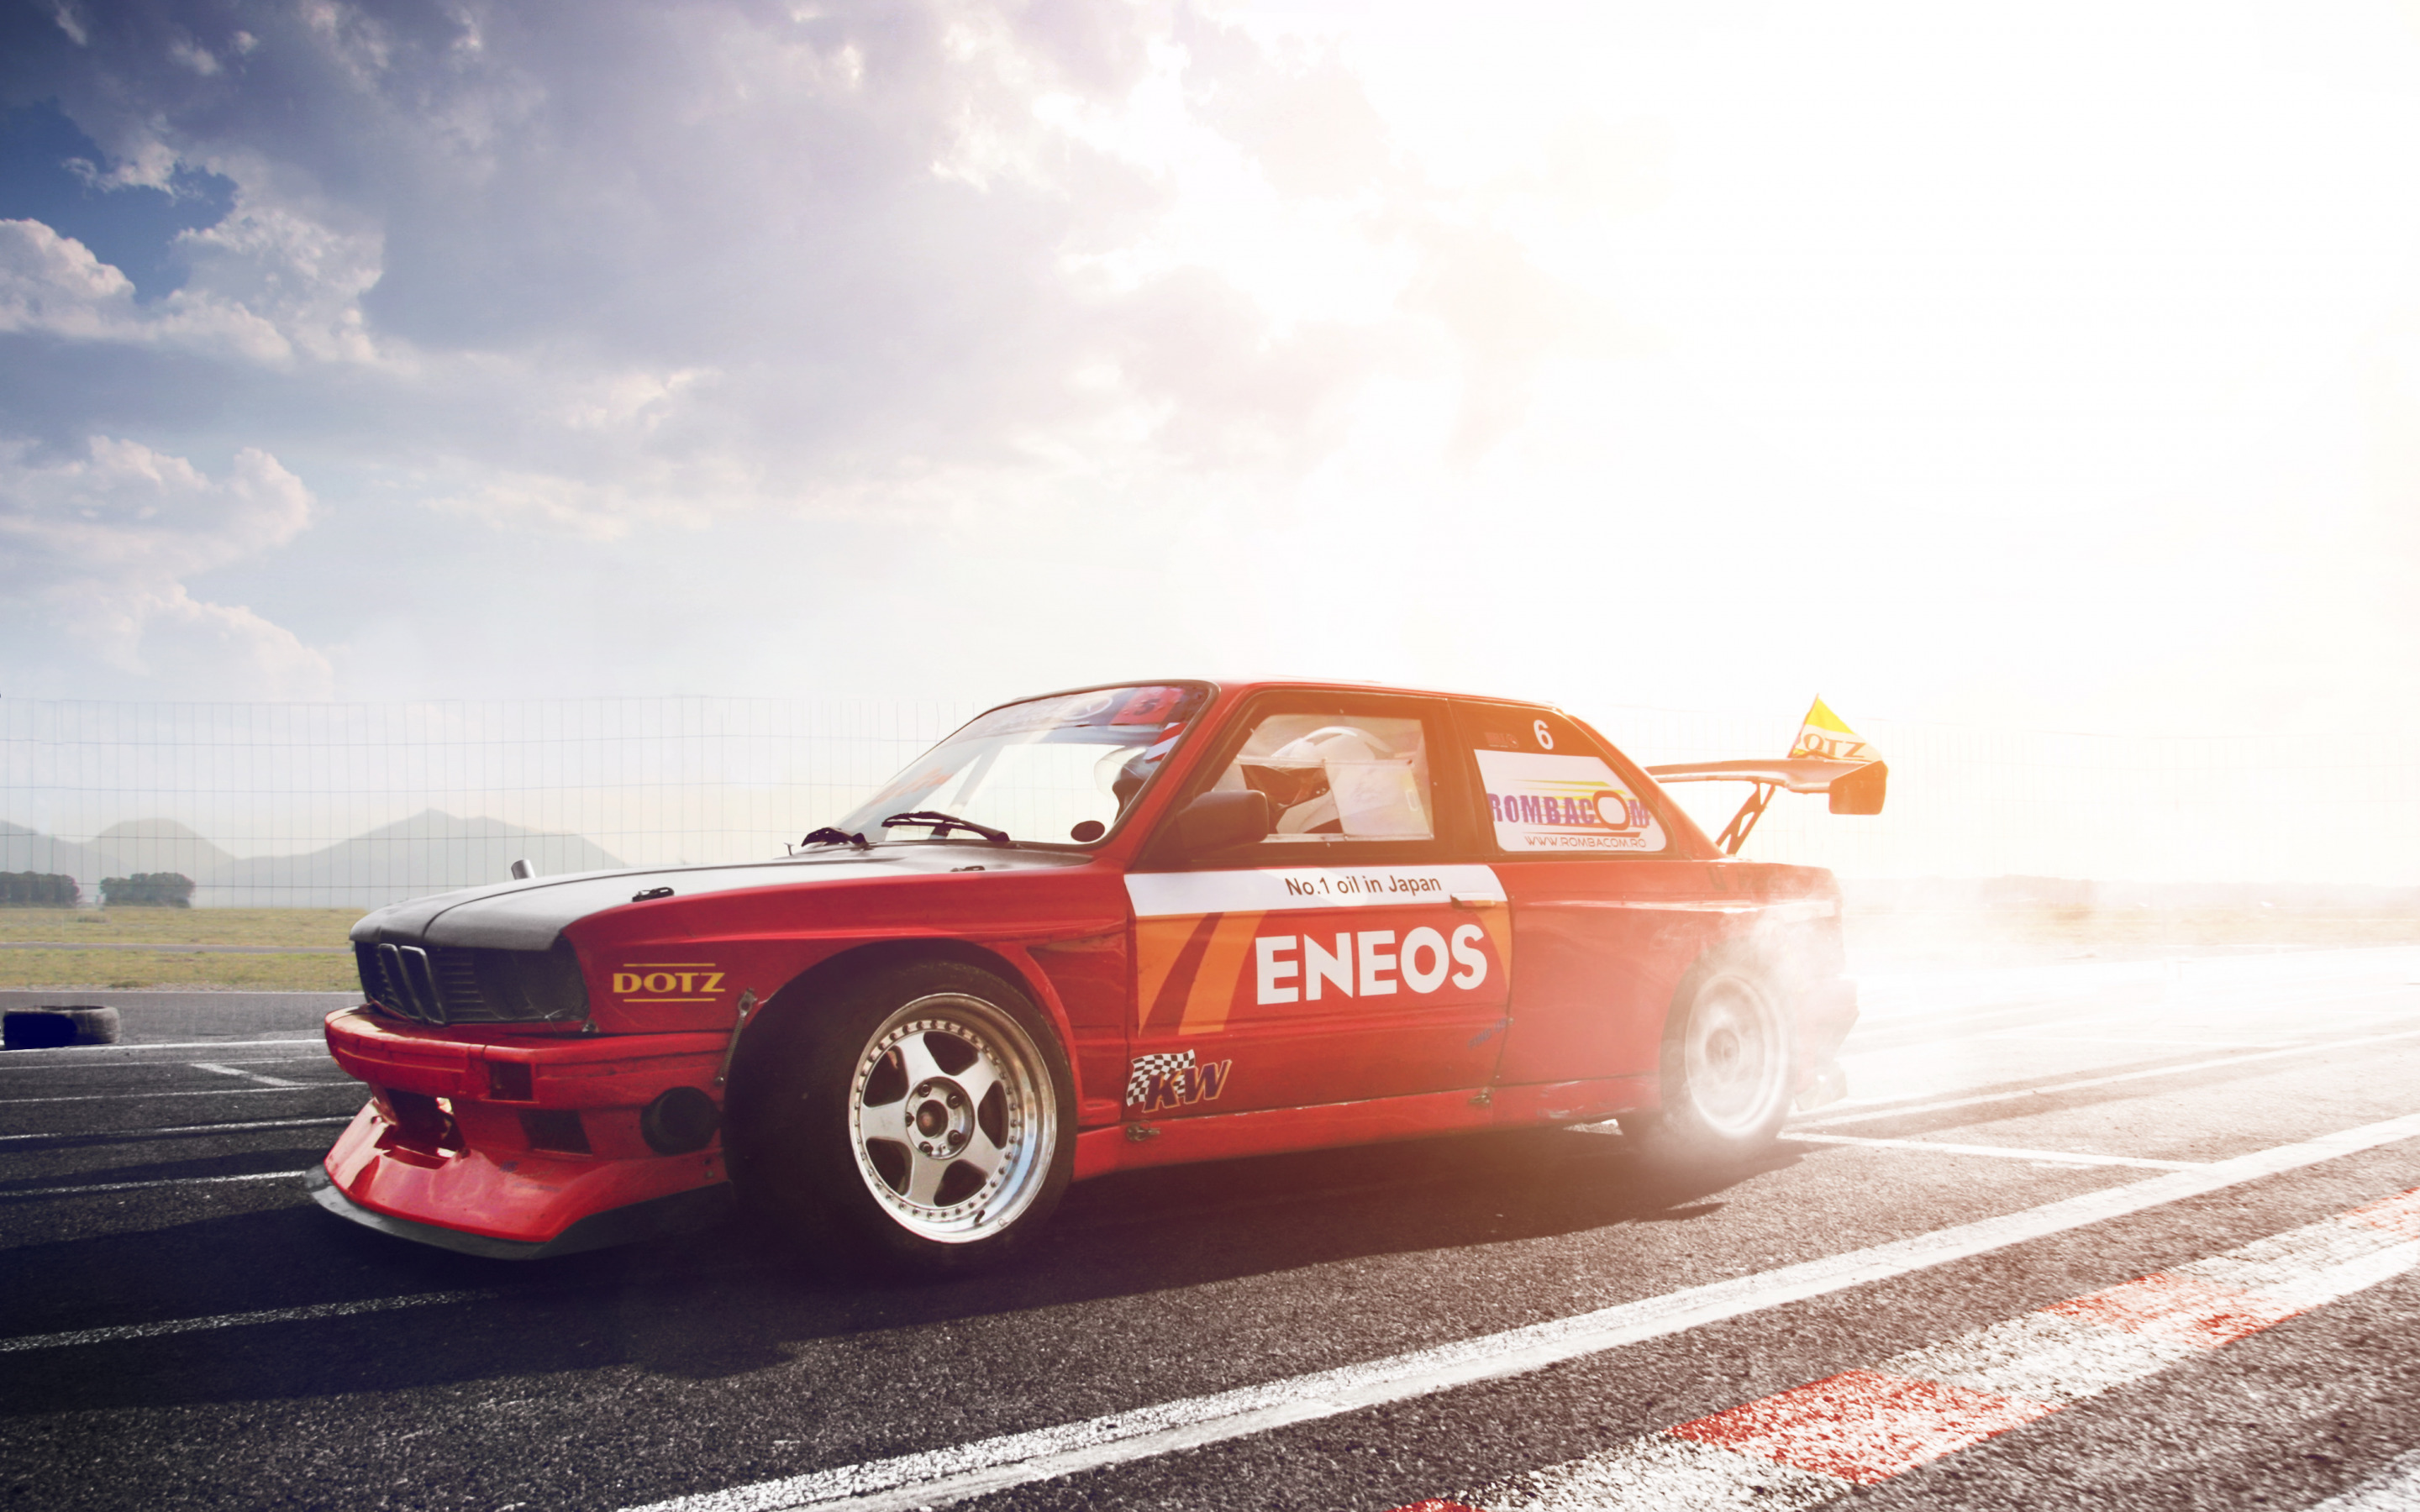 Download Wallpaper Red Bmw Bmw Turbo Red Tuning The 3 Series Turbo E30 Drift Section Bmw In Resolution 2880x1800